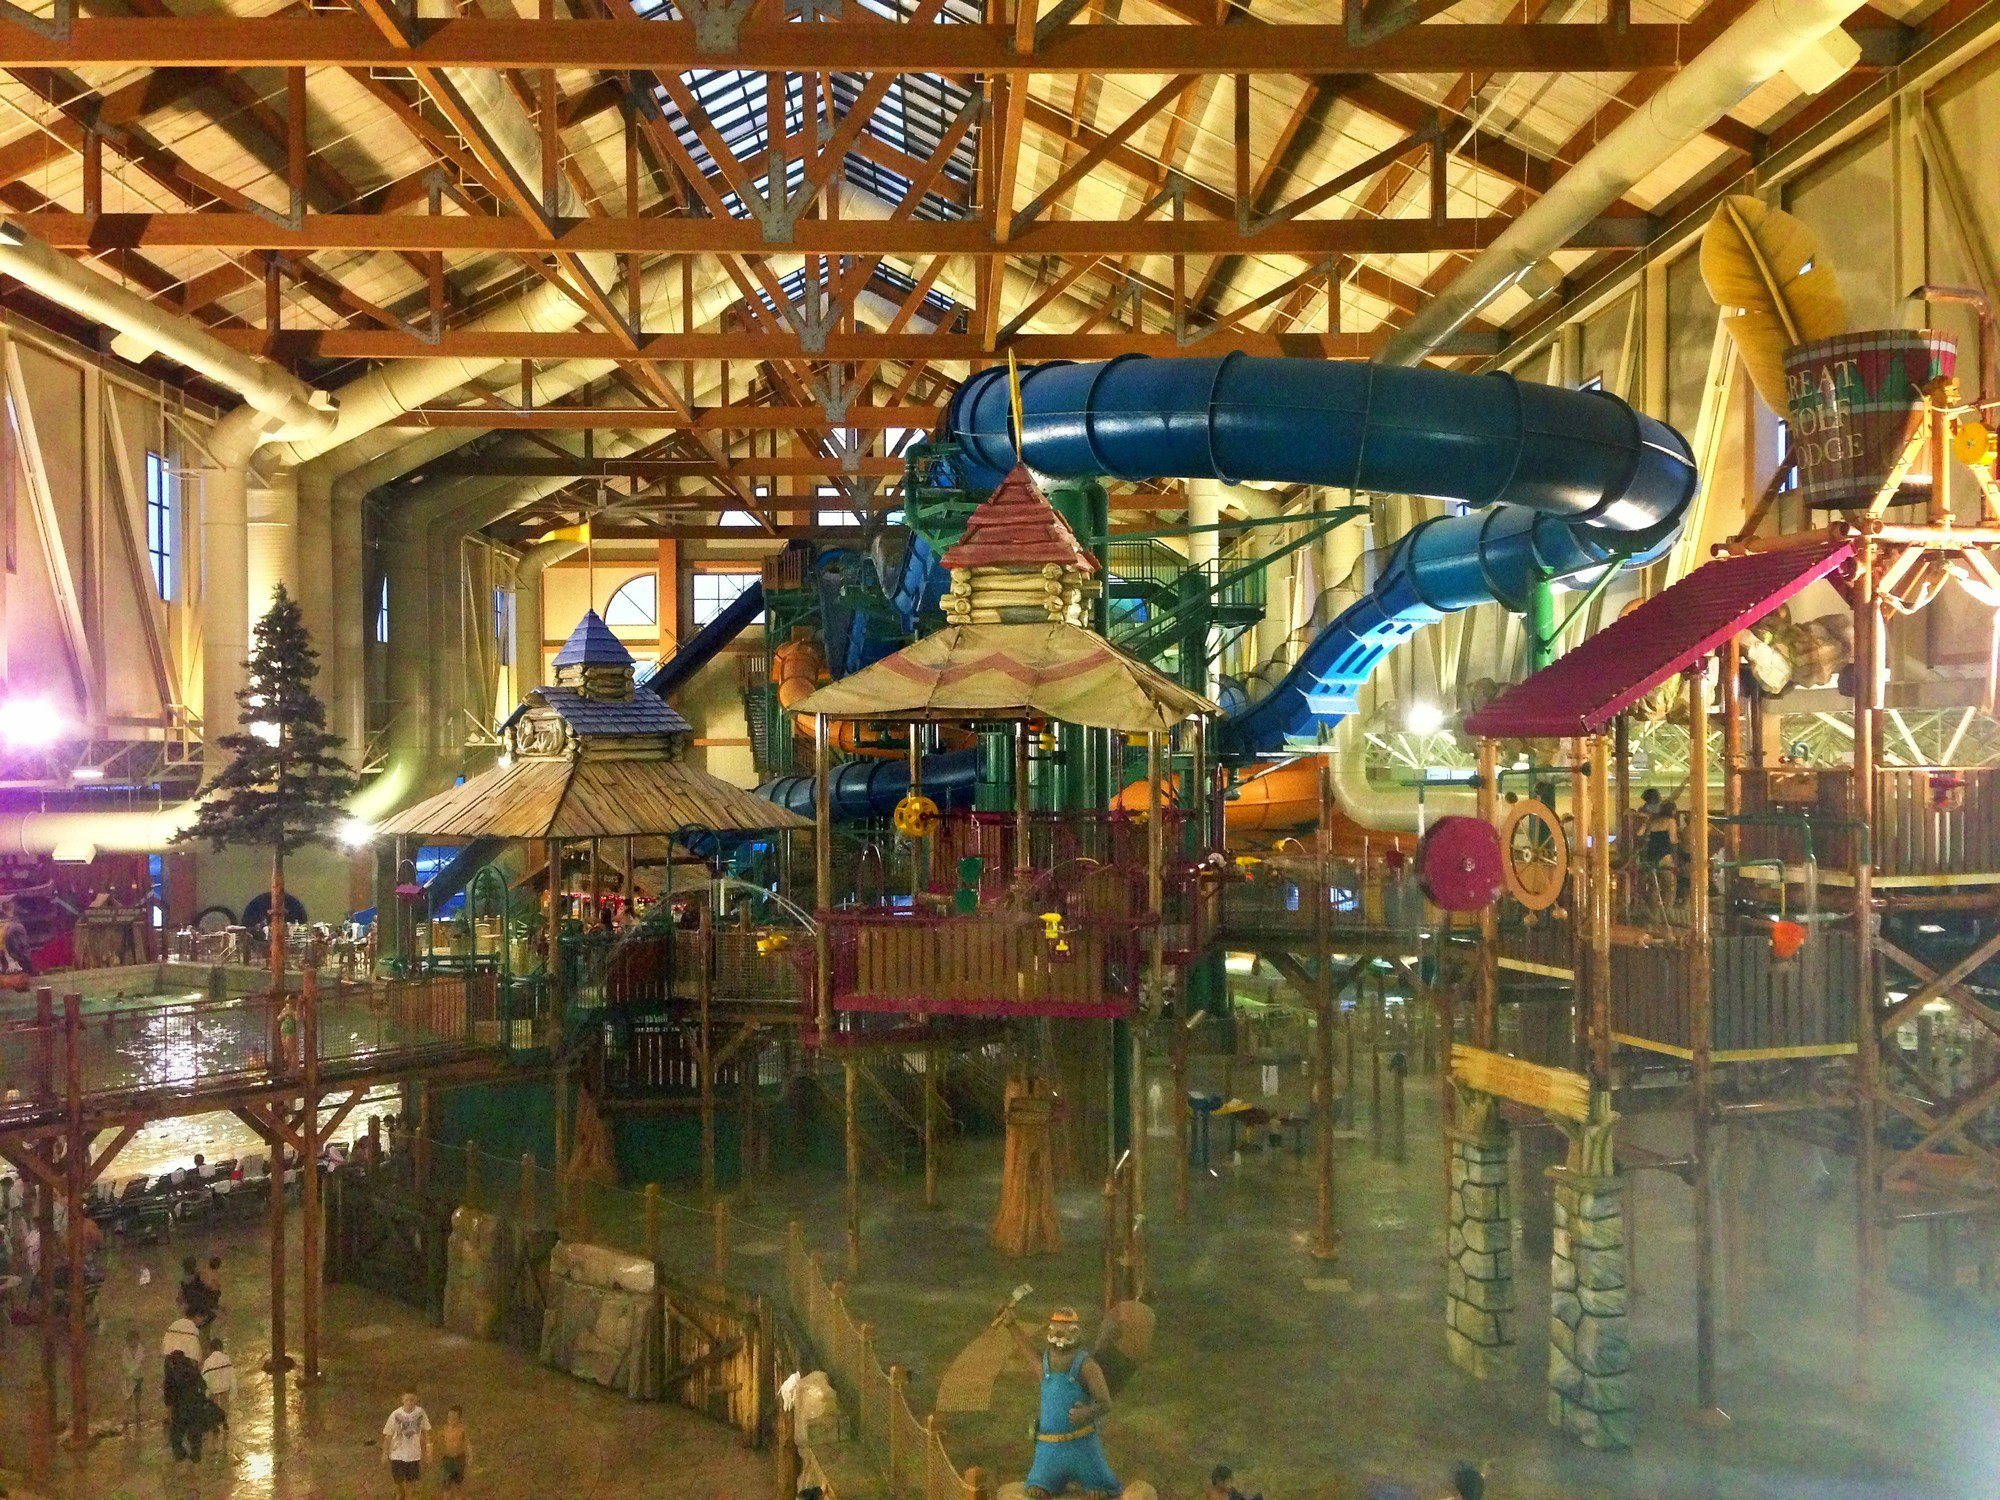 Review The Great Wolf Lodge in Pennsylvania